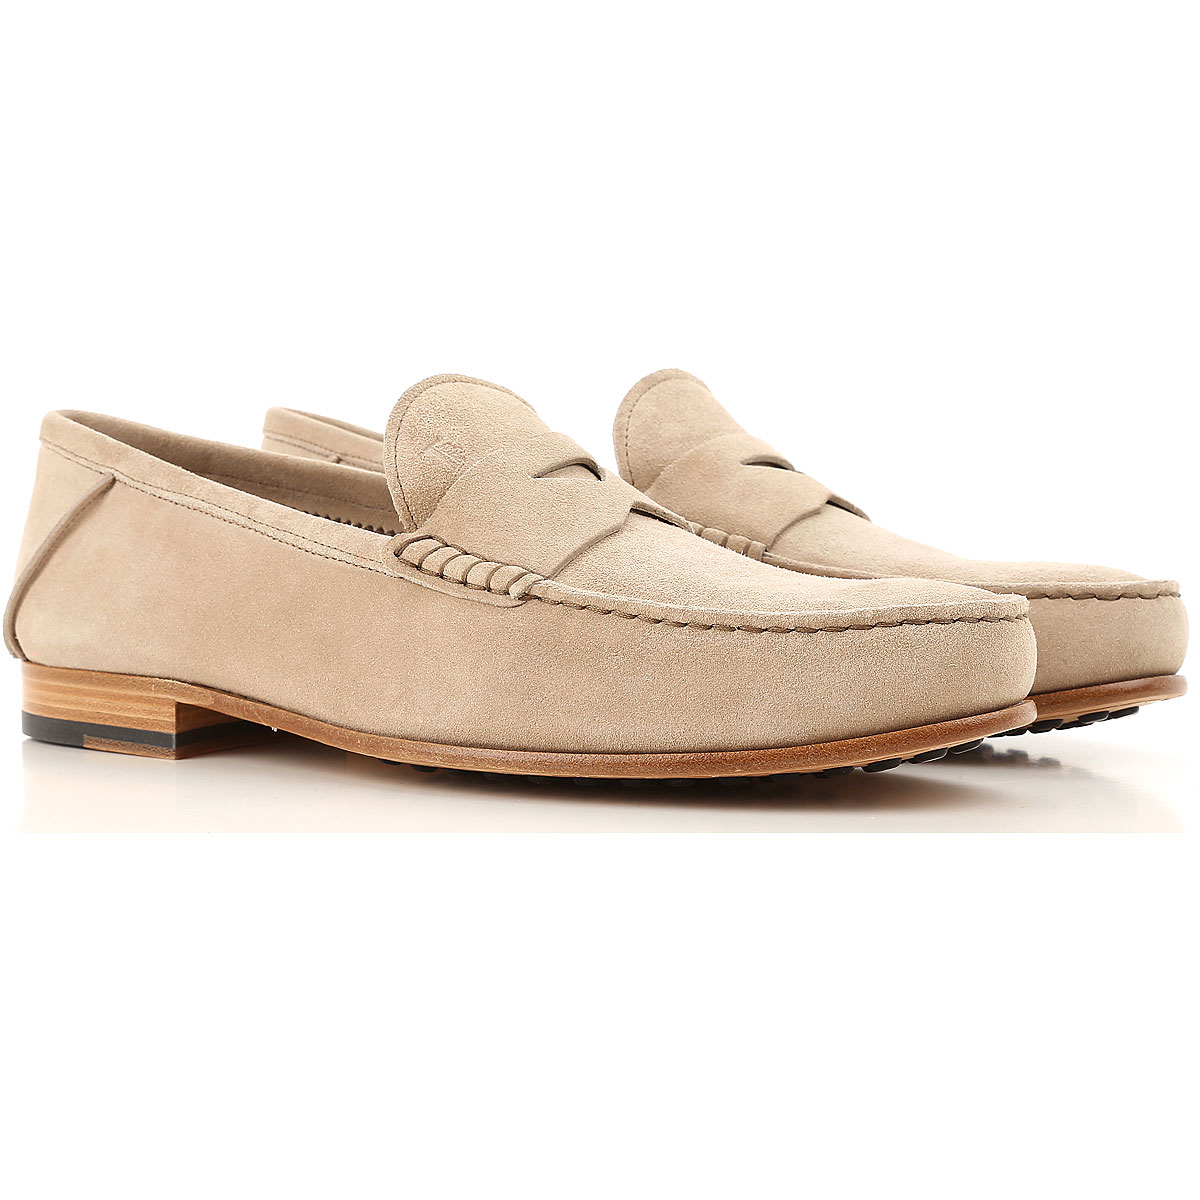 Tods Loafers for Men On Sale in Outlet Natural SE - GOOFASH